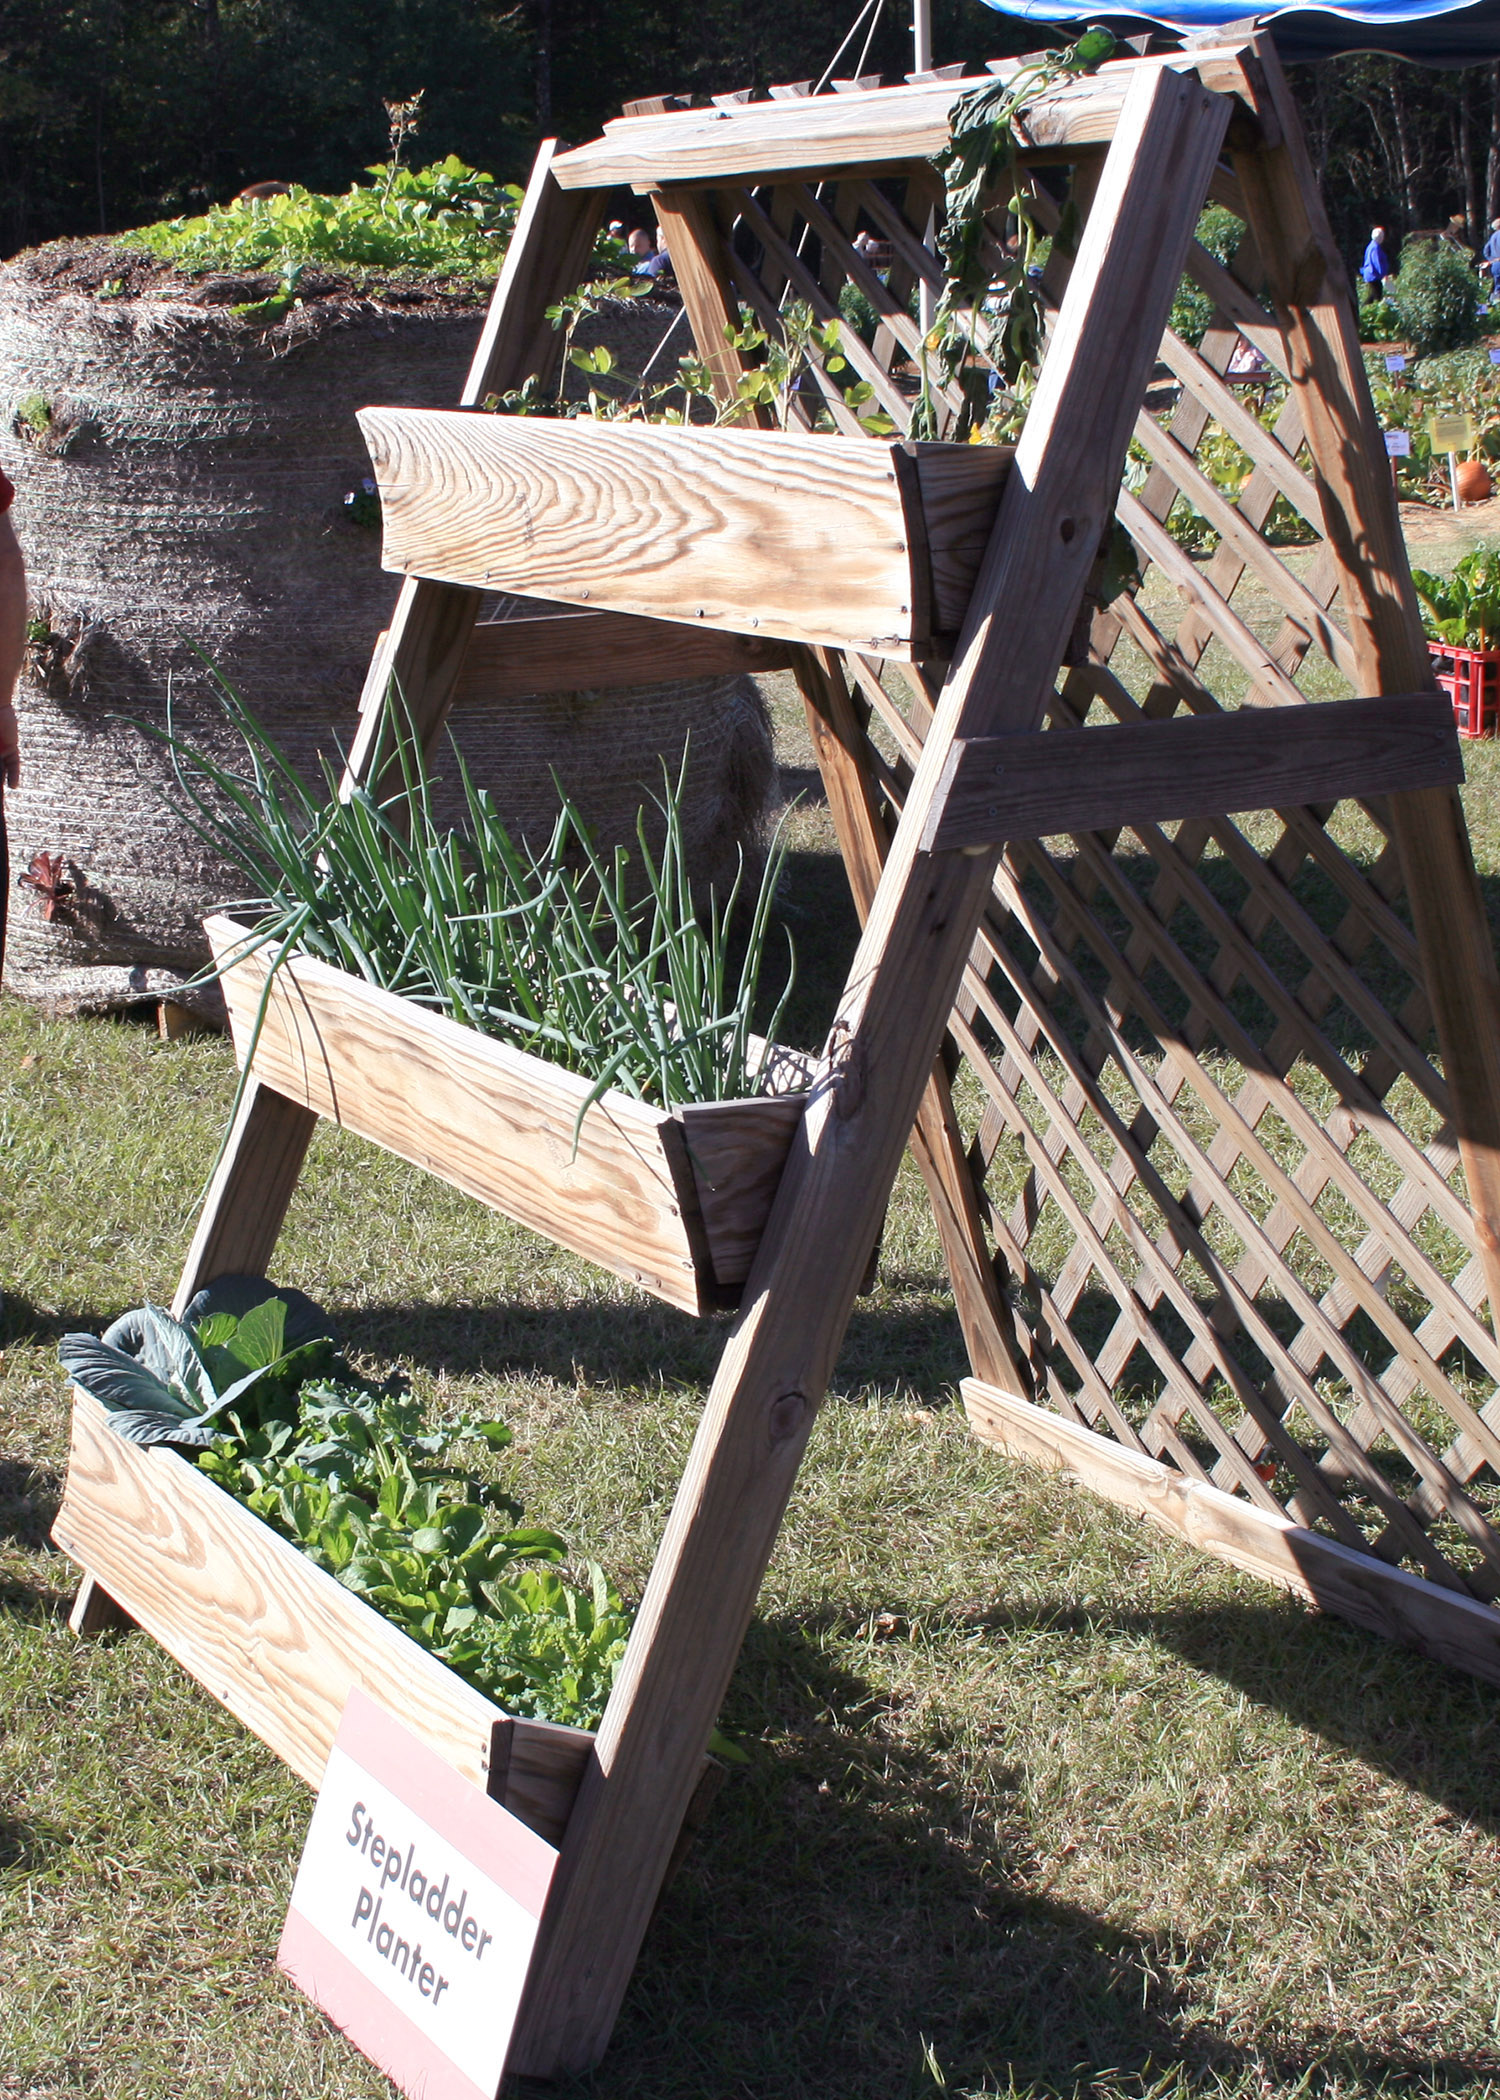 Simple Concepts Make Accessible Gardening